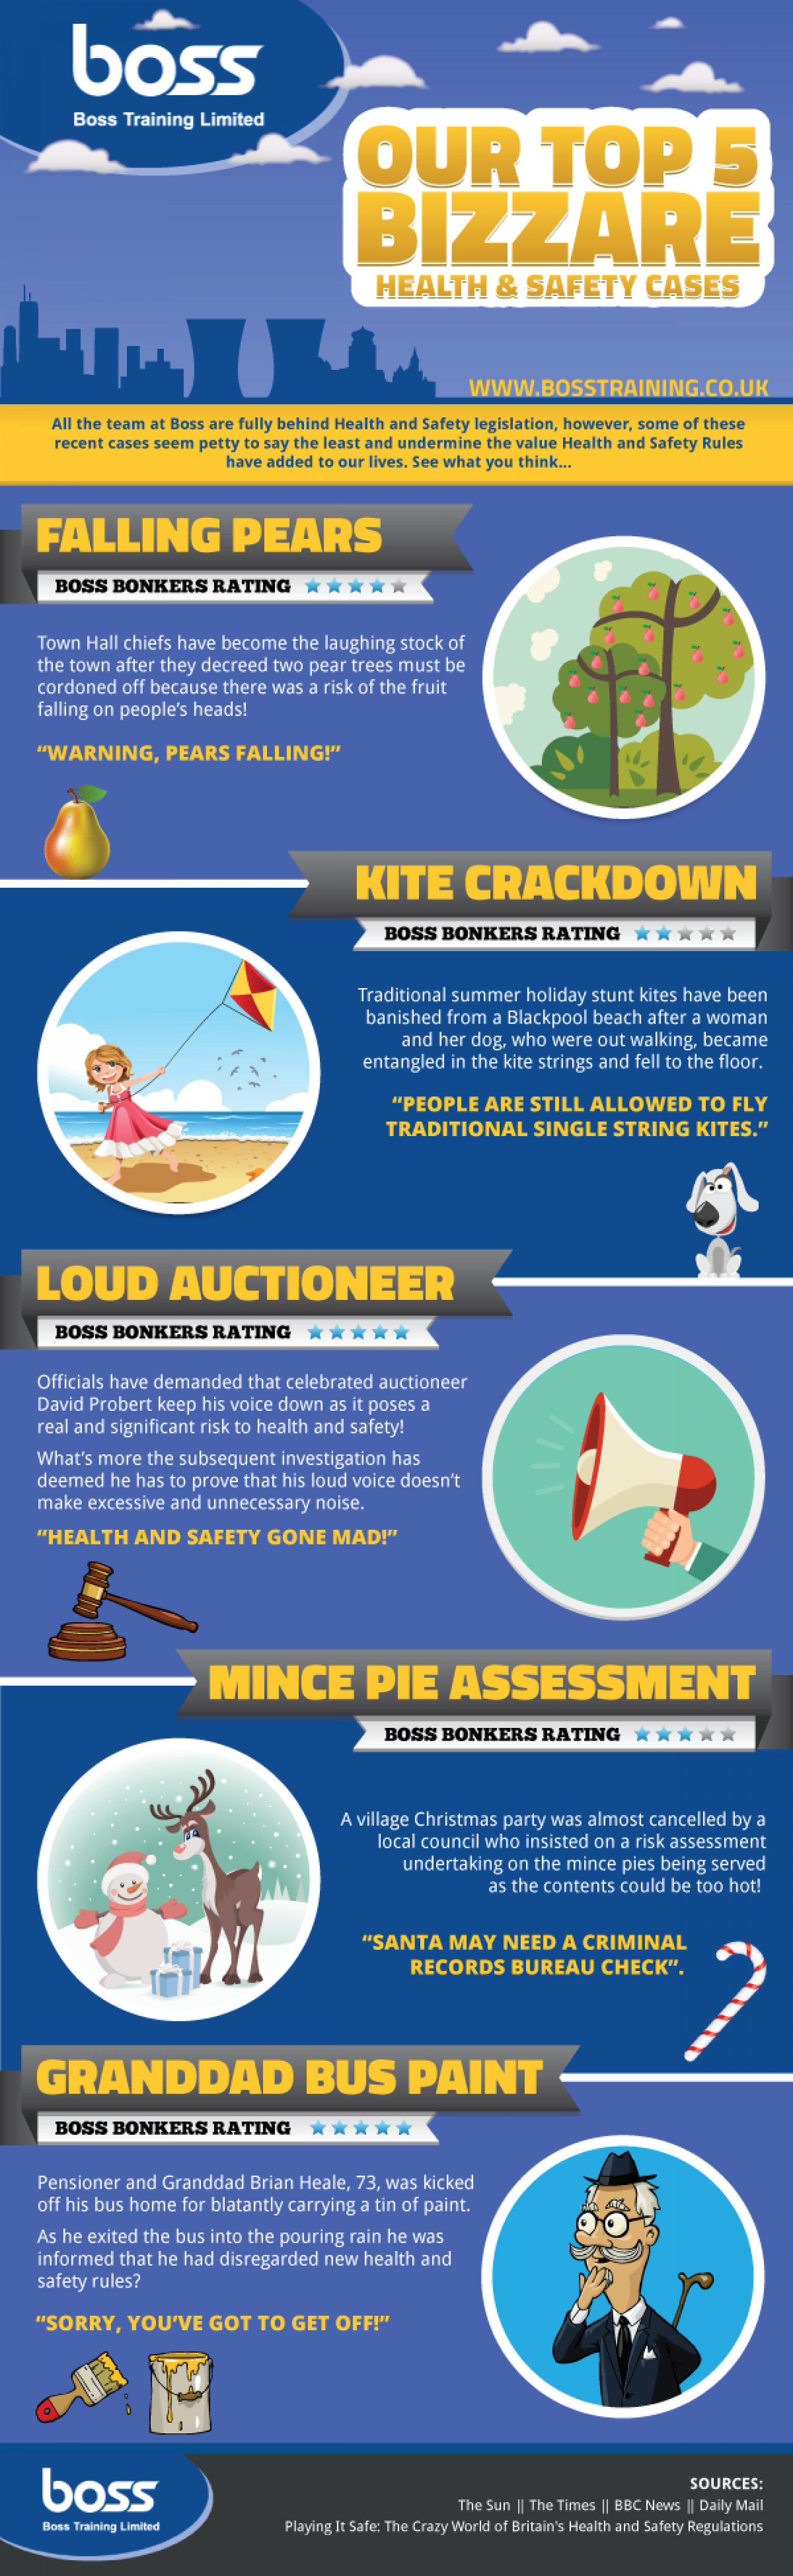 Top 5 Bizarre Health and Safety Cases Infographic